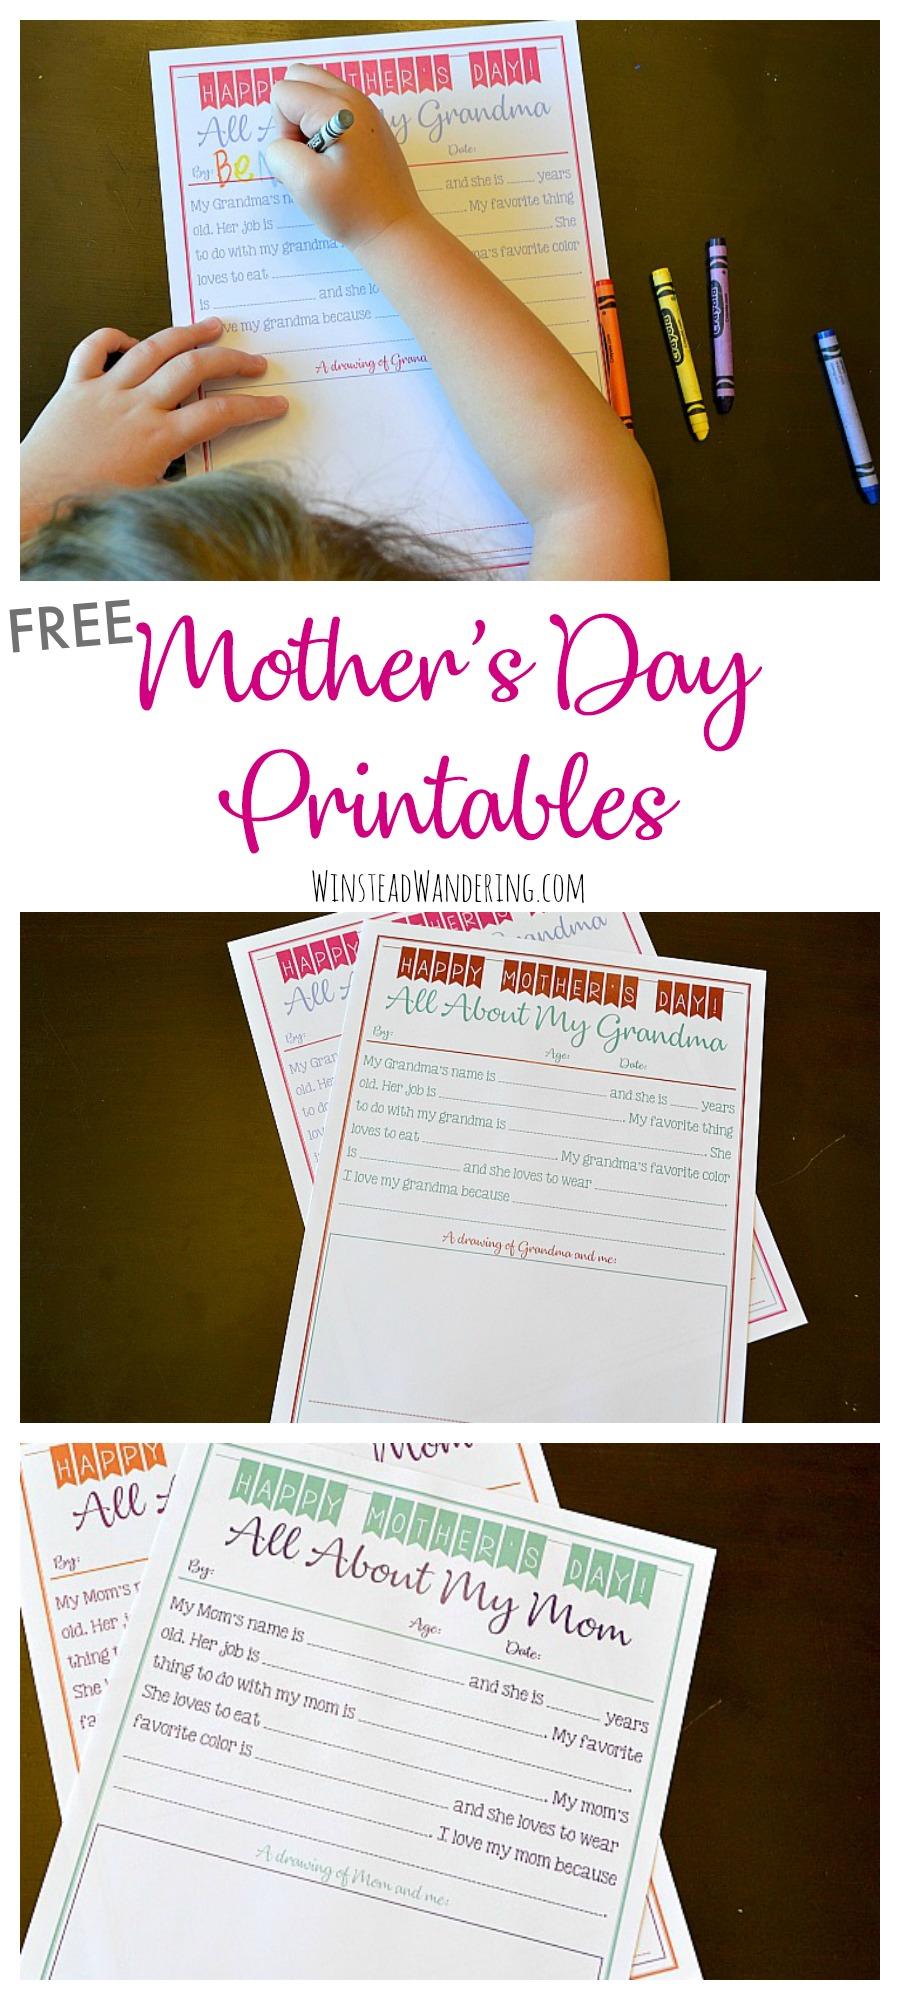 image about All About My Grandma Printable identified as Free of charge Moms Working day Printables (for grandma, as well!) Winstead